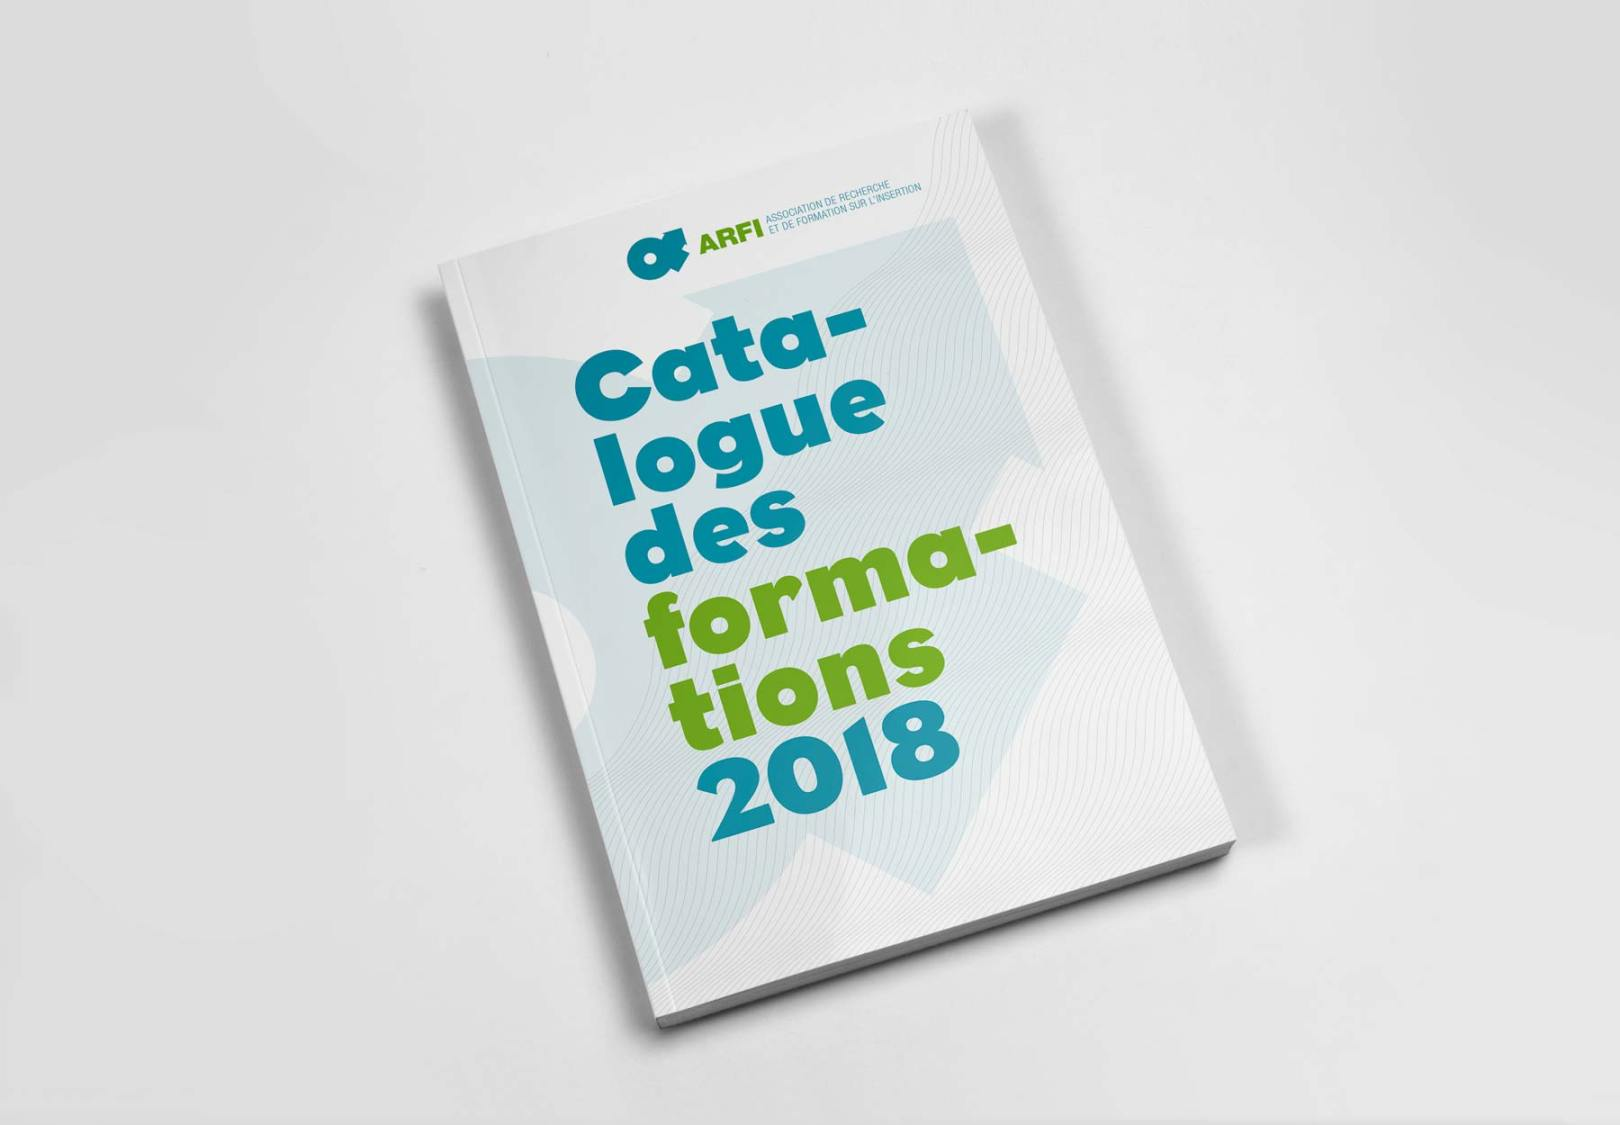 Publication Catalogue des formations de l'ARFI 2018